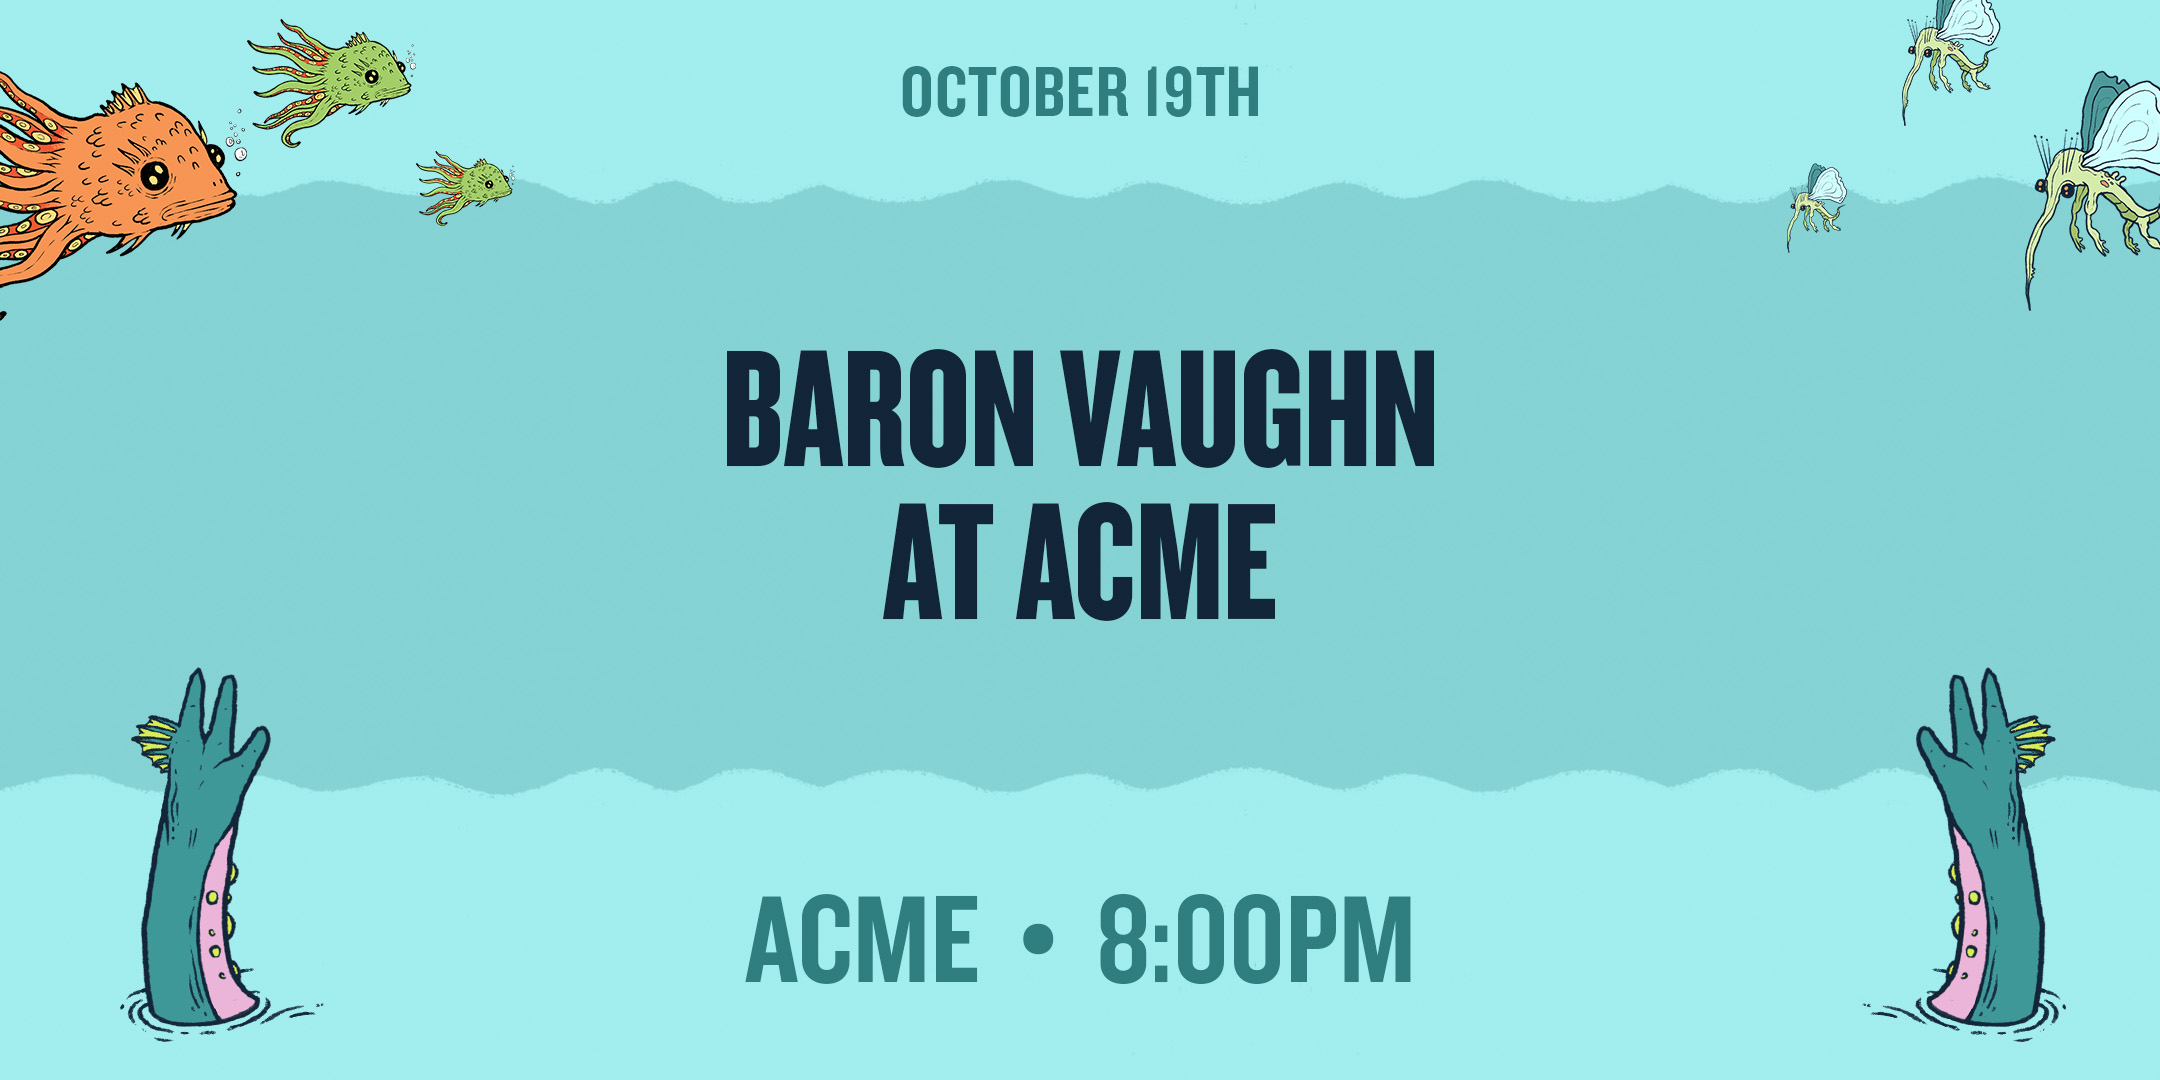 Baron Vaughn at Acme.jpg